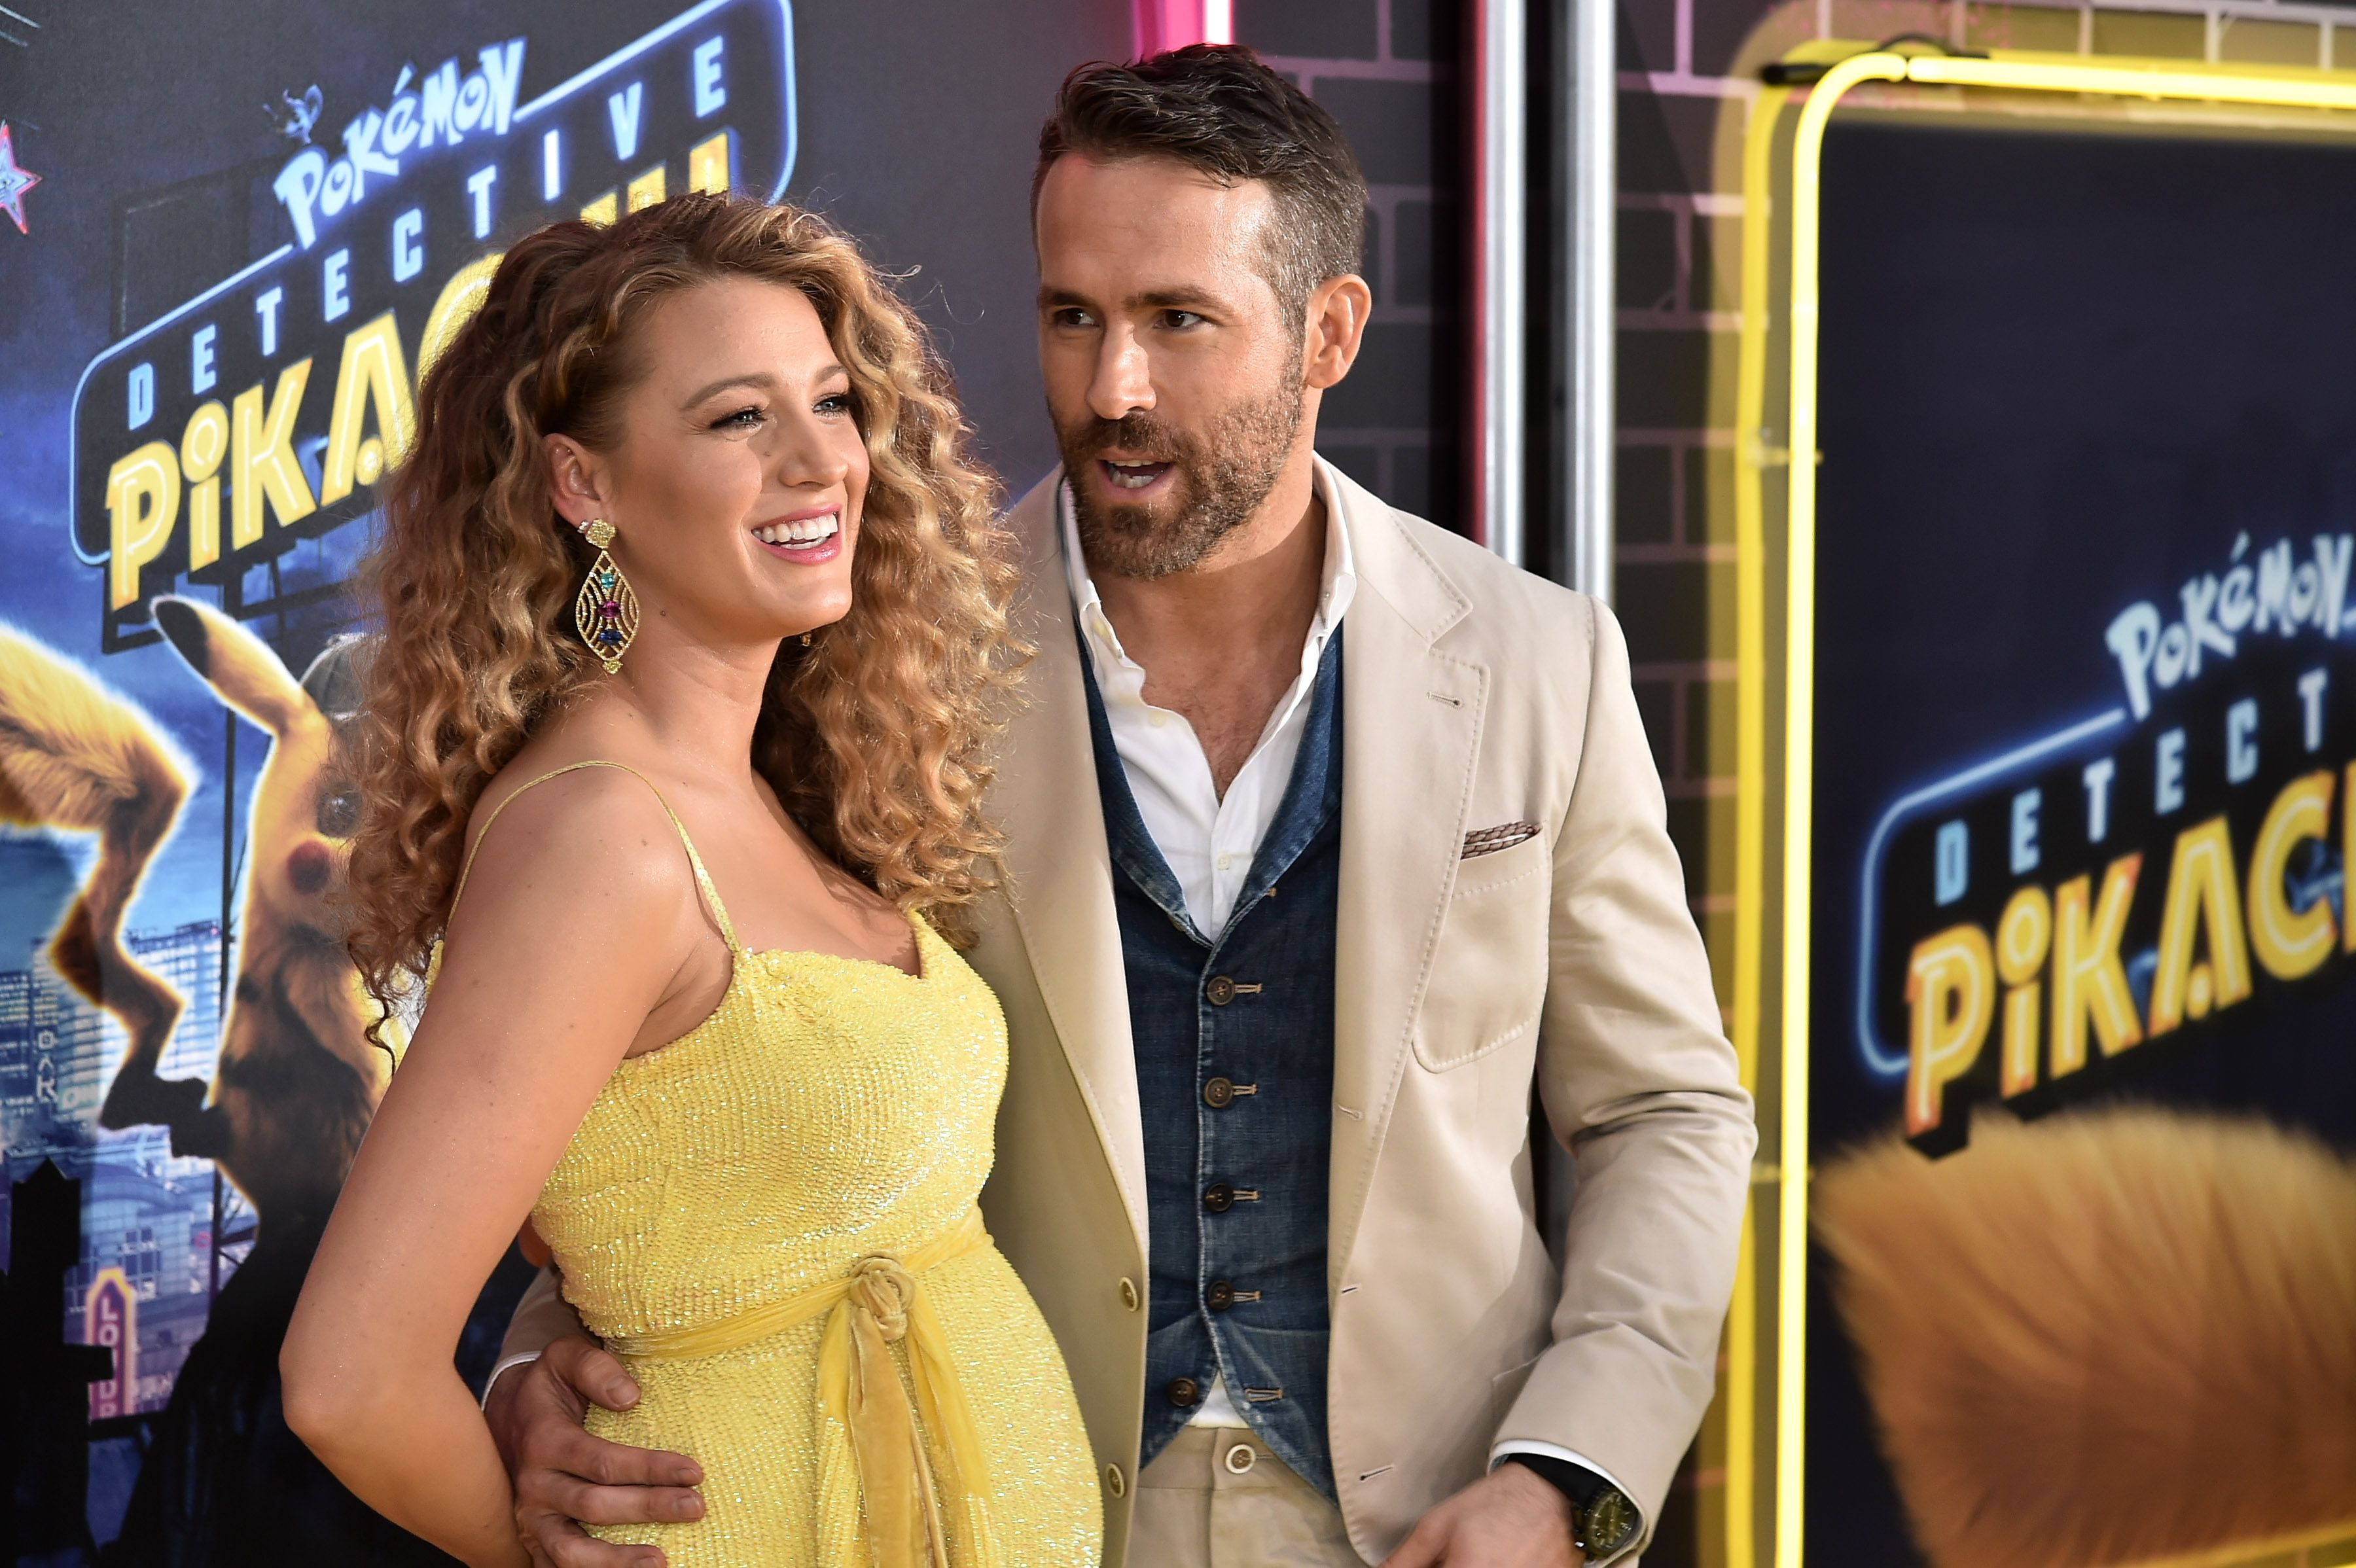 Blake Lively and Ryan Reynolds pose for a photo.